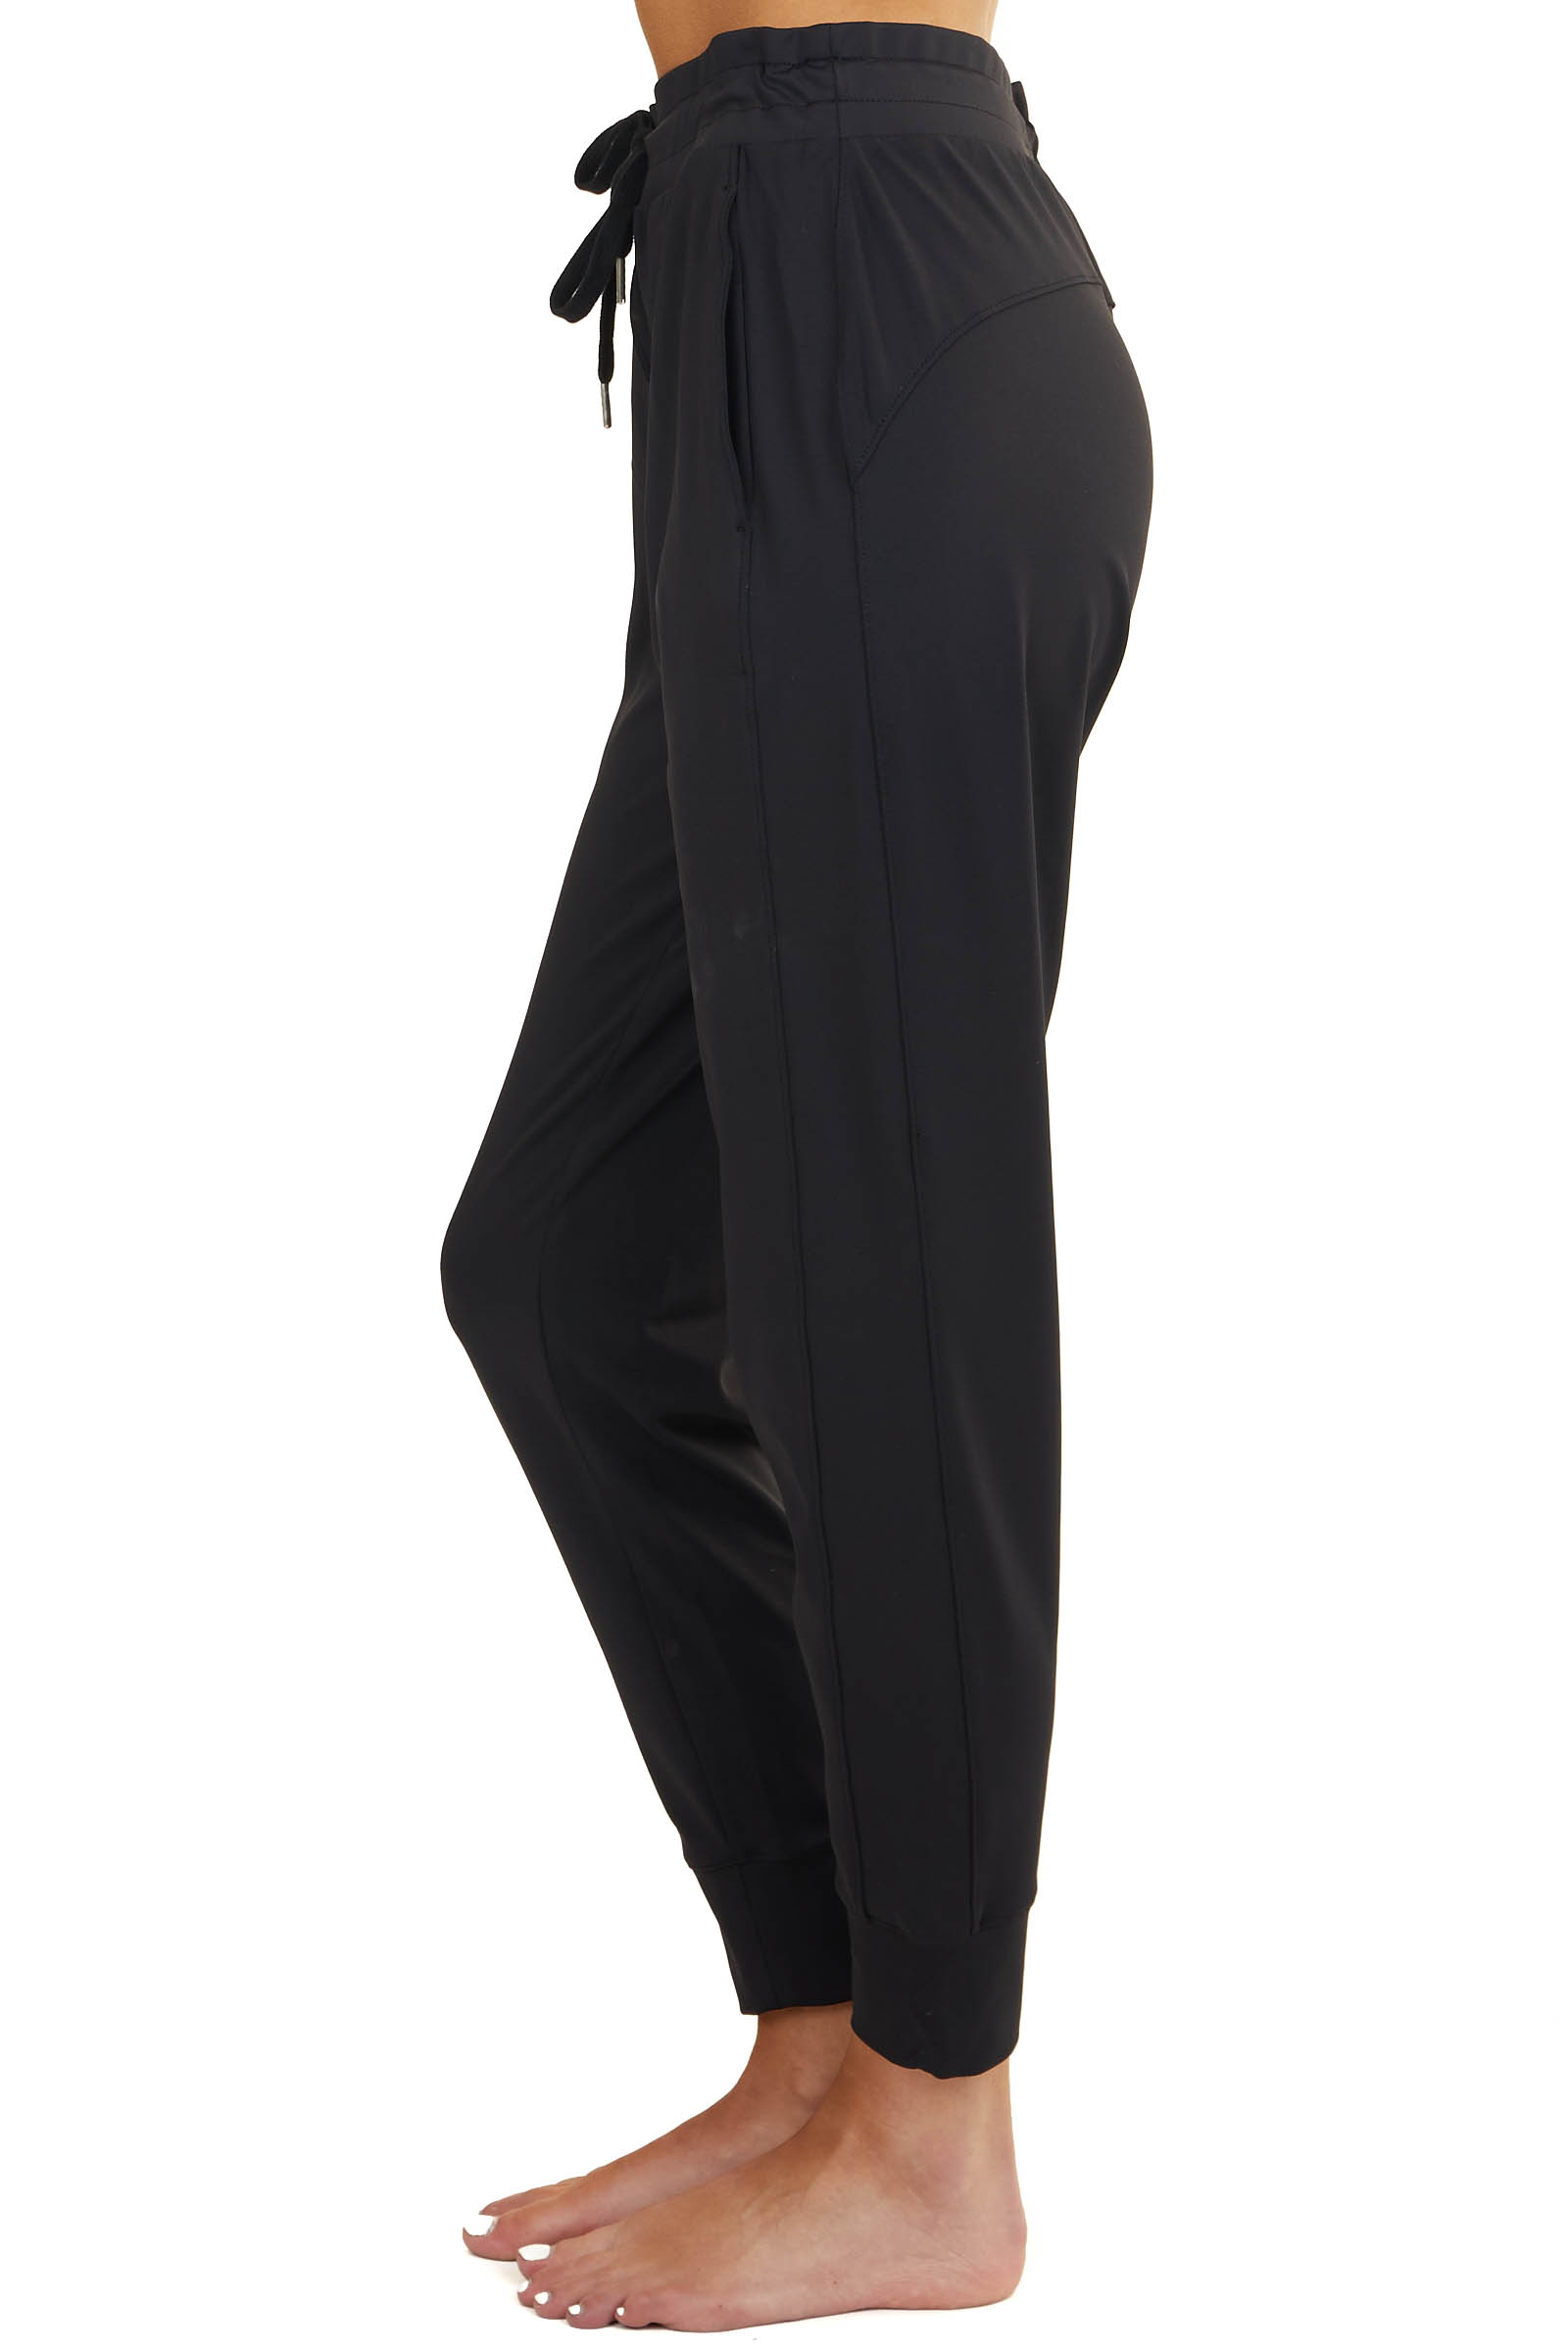 Black Side Paneled Joggers with Drawstring and Side Pockets